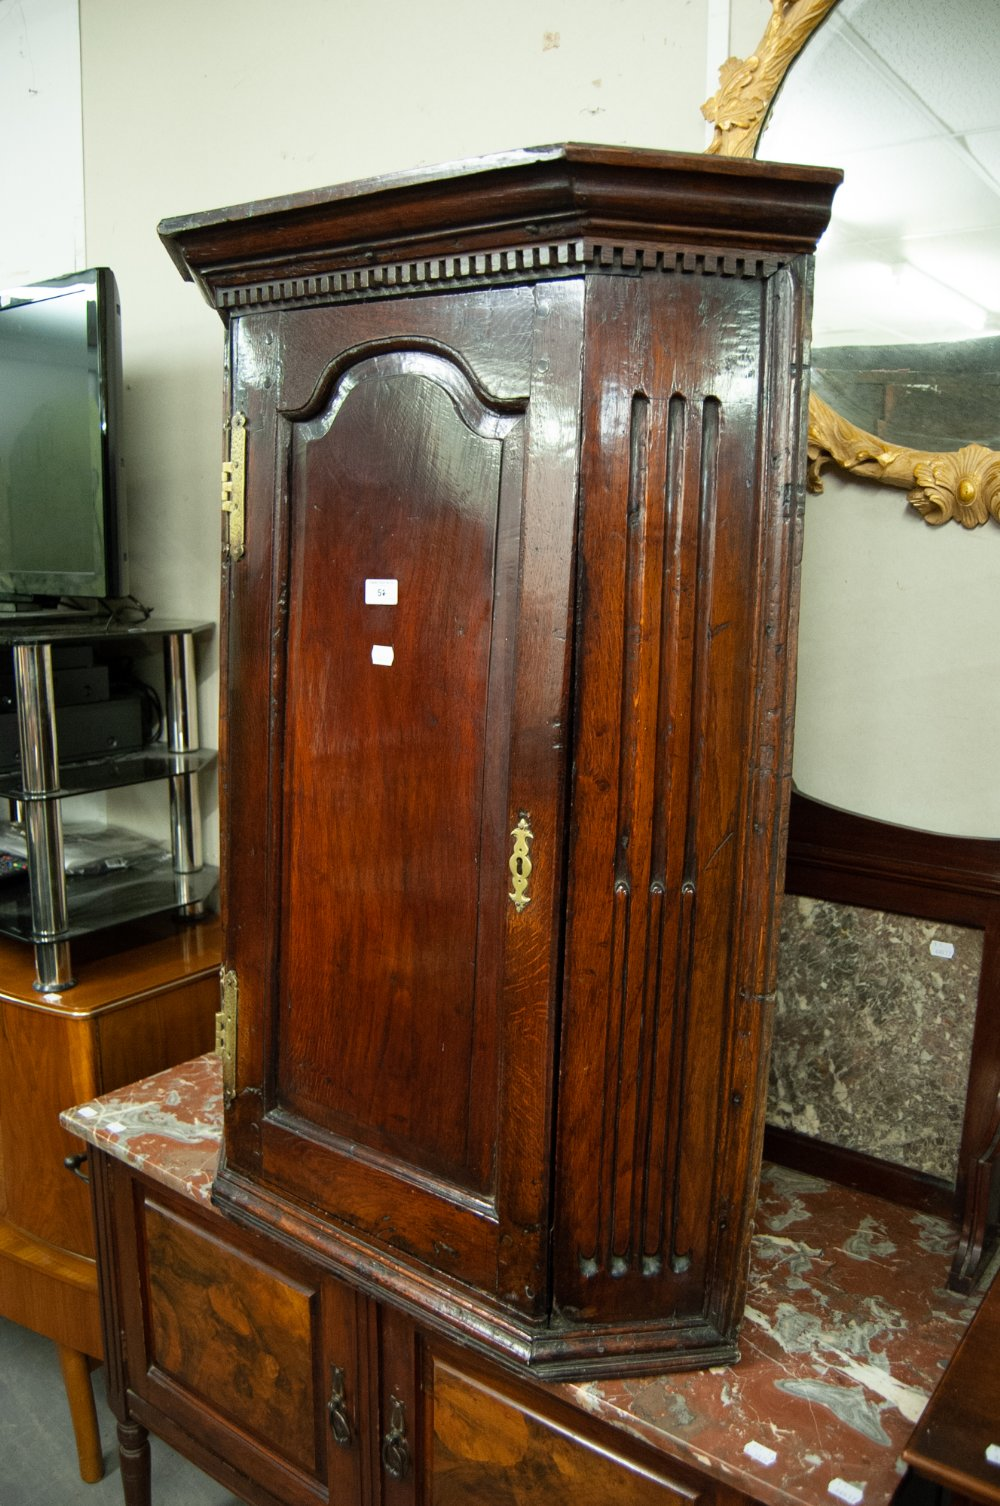 Lot 51 - A NINETEENTH CENTURY JACOBEAN REVIVAL OAK CORNER CUPBOARD WITH STEPPED CORNICE OVER CHAMFERRED